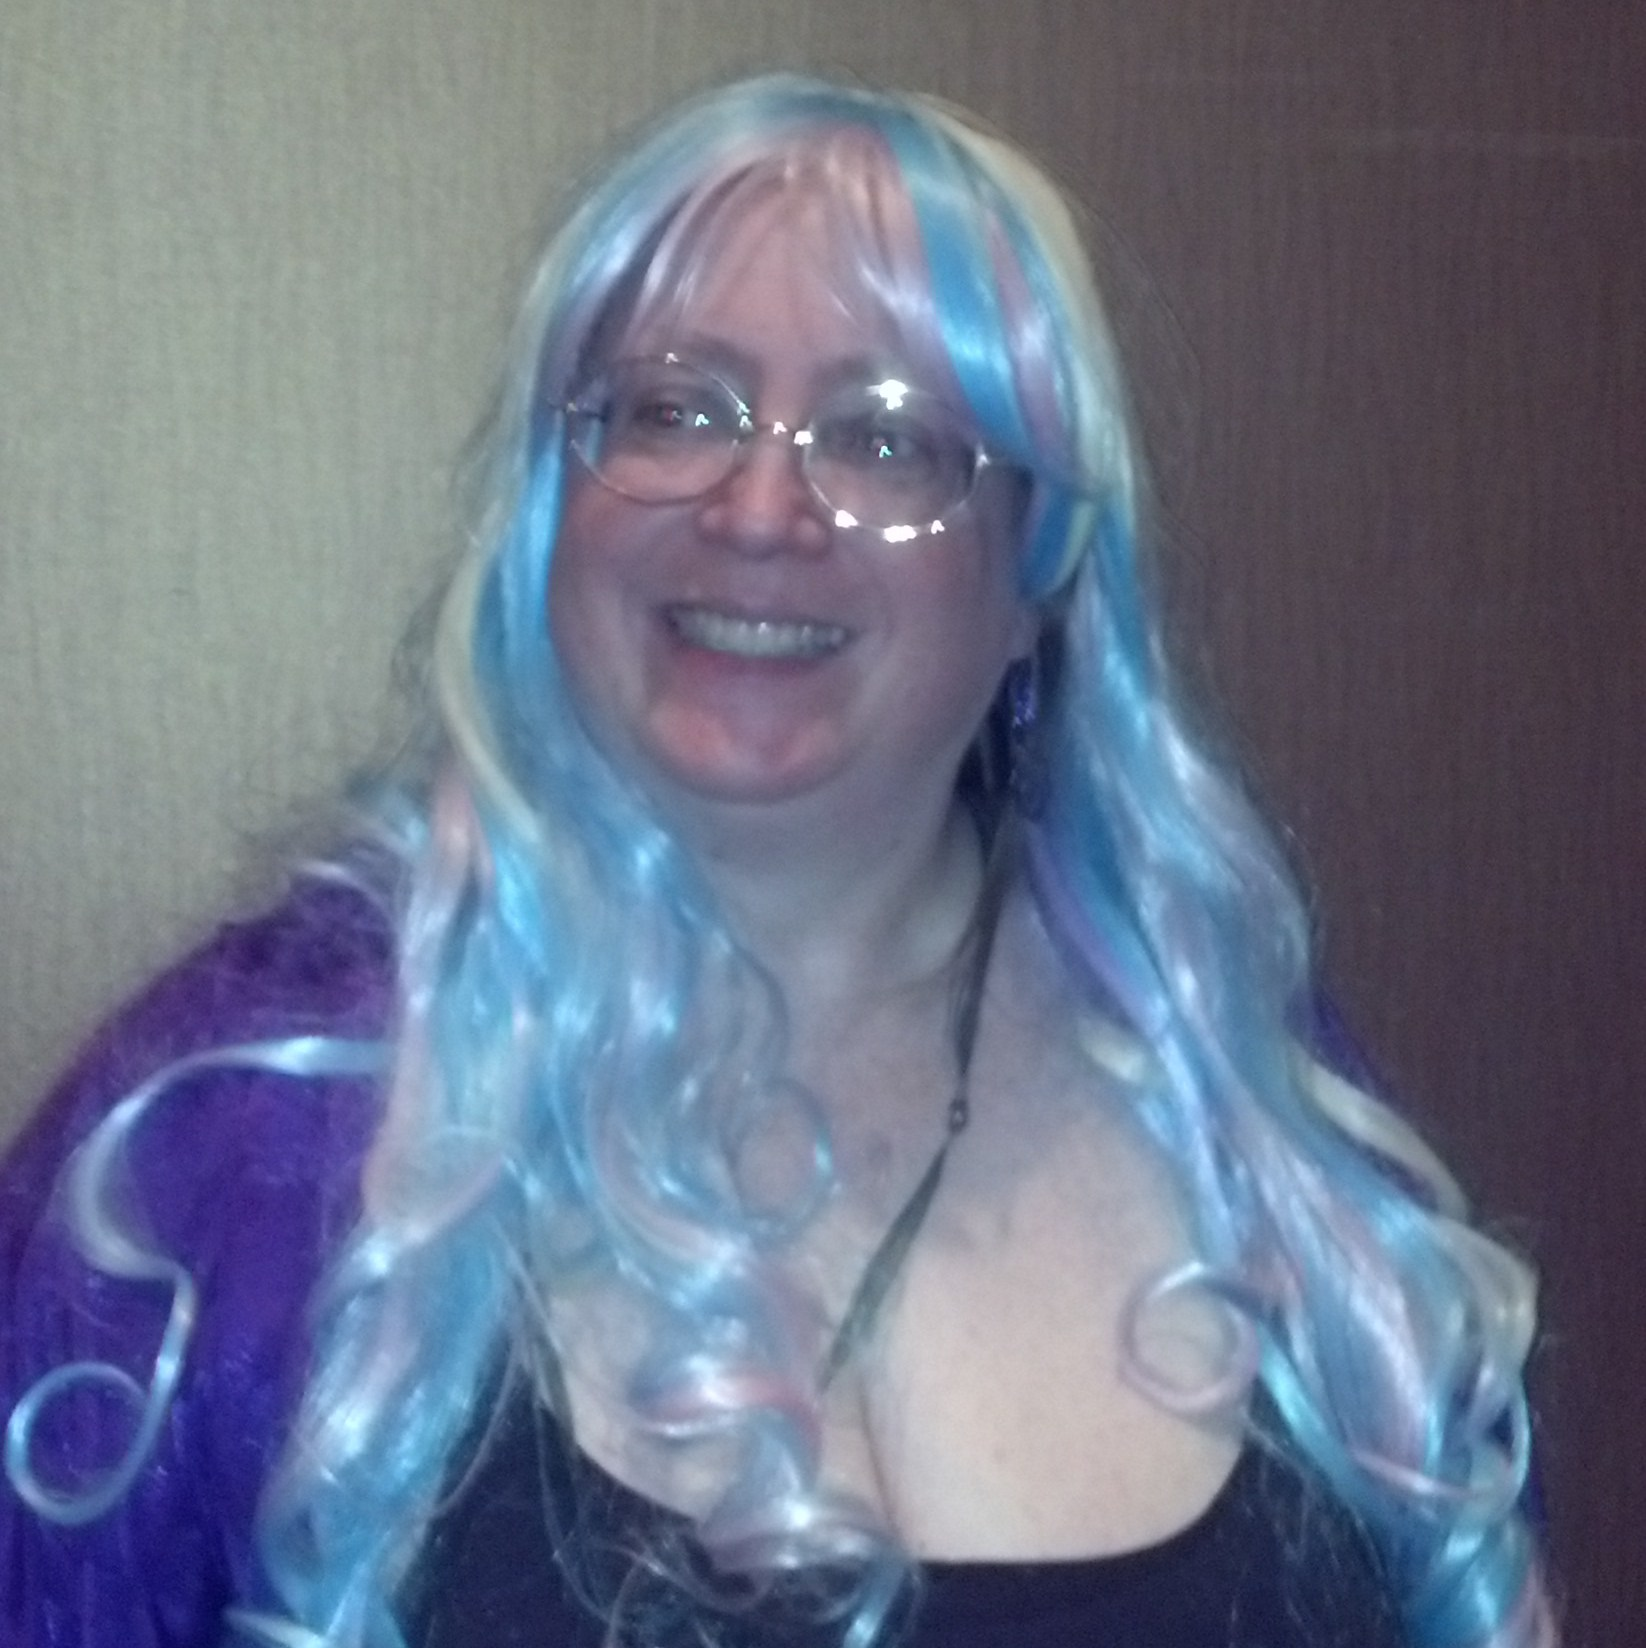 Deirdre at Capricon 2014